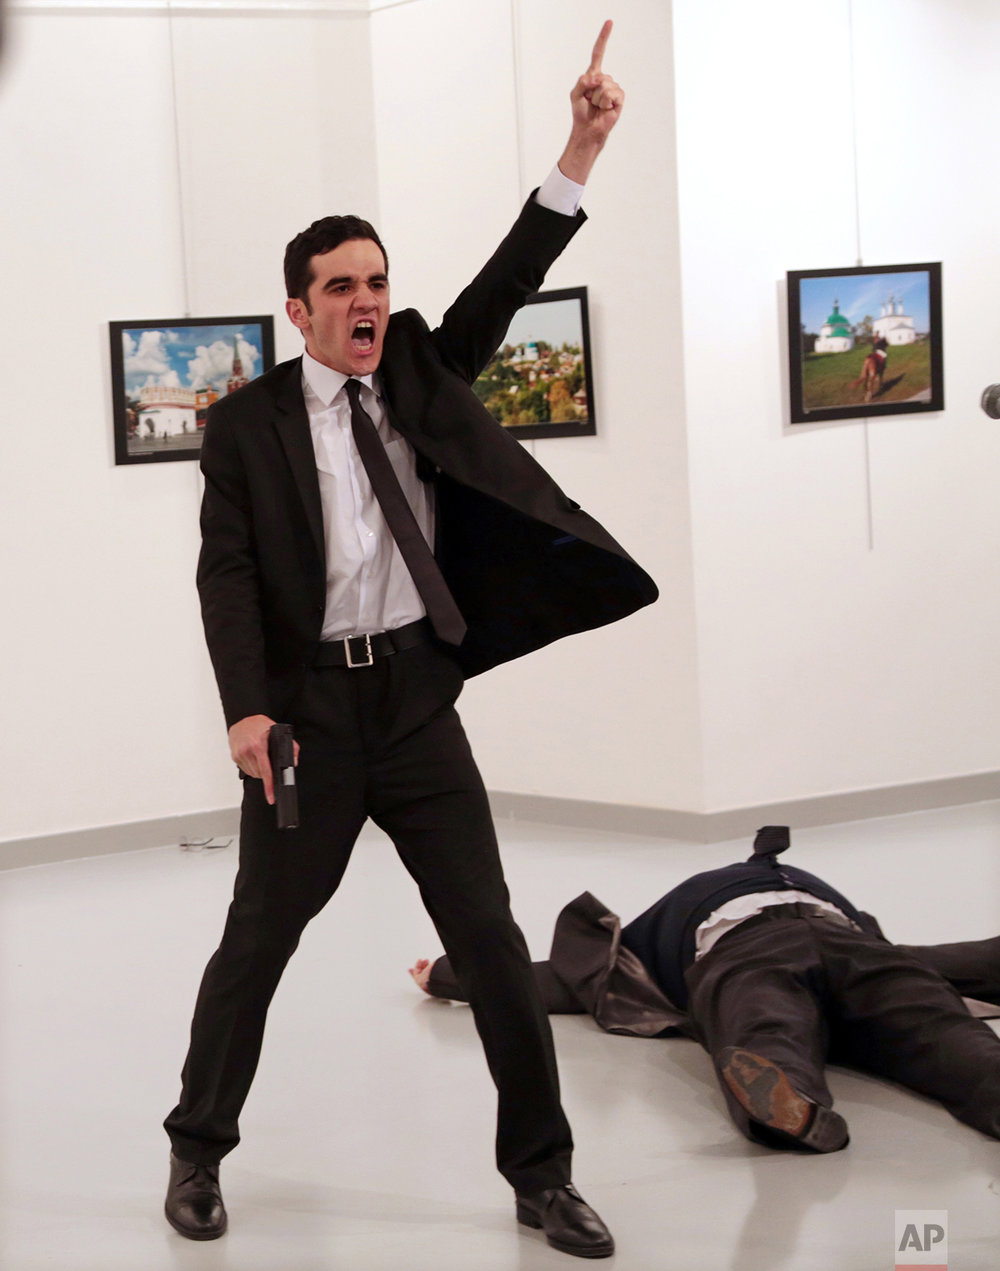 "Mevlut Mert Altintas shouts after shooting Andrei Karlov, right, the Russian ambassador to Turkey, at an art gallery in Ankara, Turkey, Monday, Dec. 19, 2016.  Associated Press photographer Burhan Ozbilici won the 2017 World Press Photo competition Monday Feb. 13, 2017 for the image. It was part of a series titled ""An Assassination in Turkey"" which also won the Spot News - Stories category, captured in the moments before and after Altintas, an off-duty policeman, drew a handgun and shot Karlov at a photo exhibition.(AP Photo/Burhan Ozbilici)"